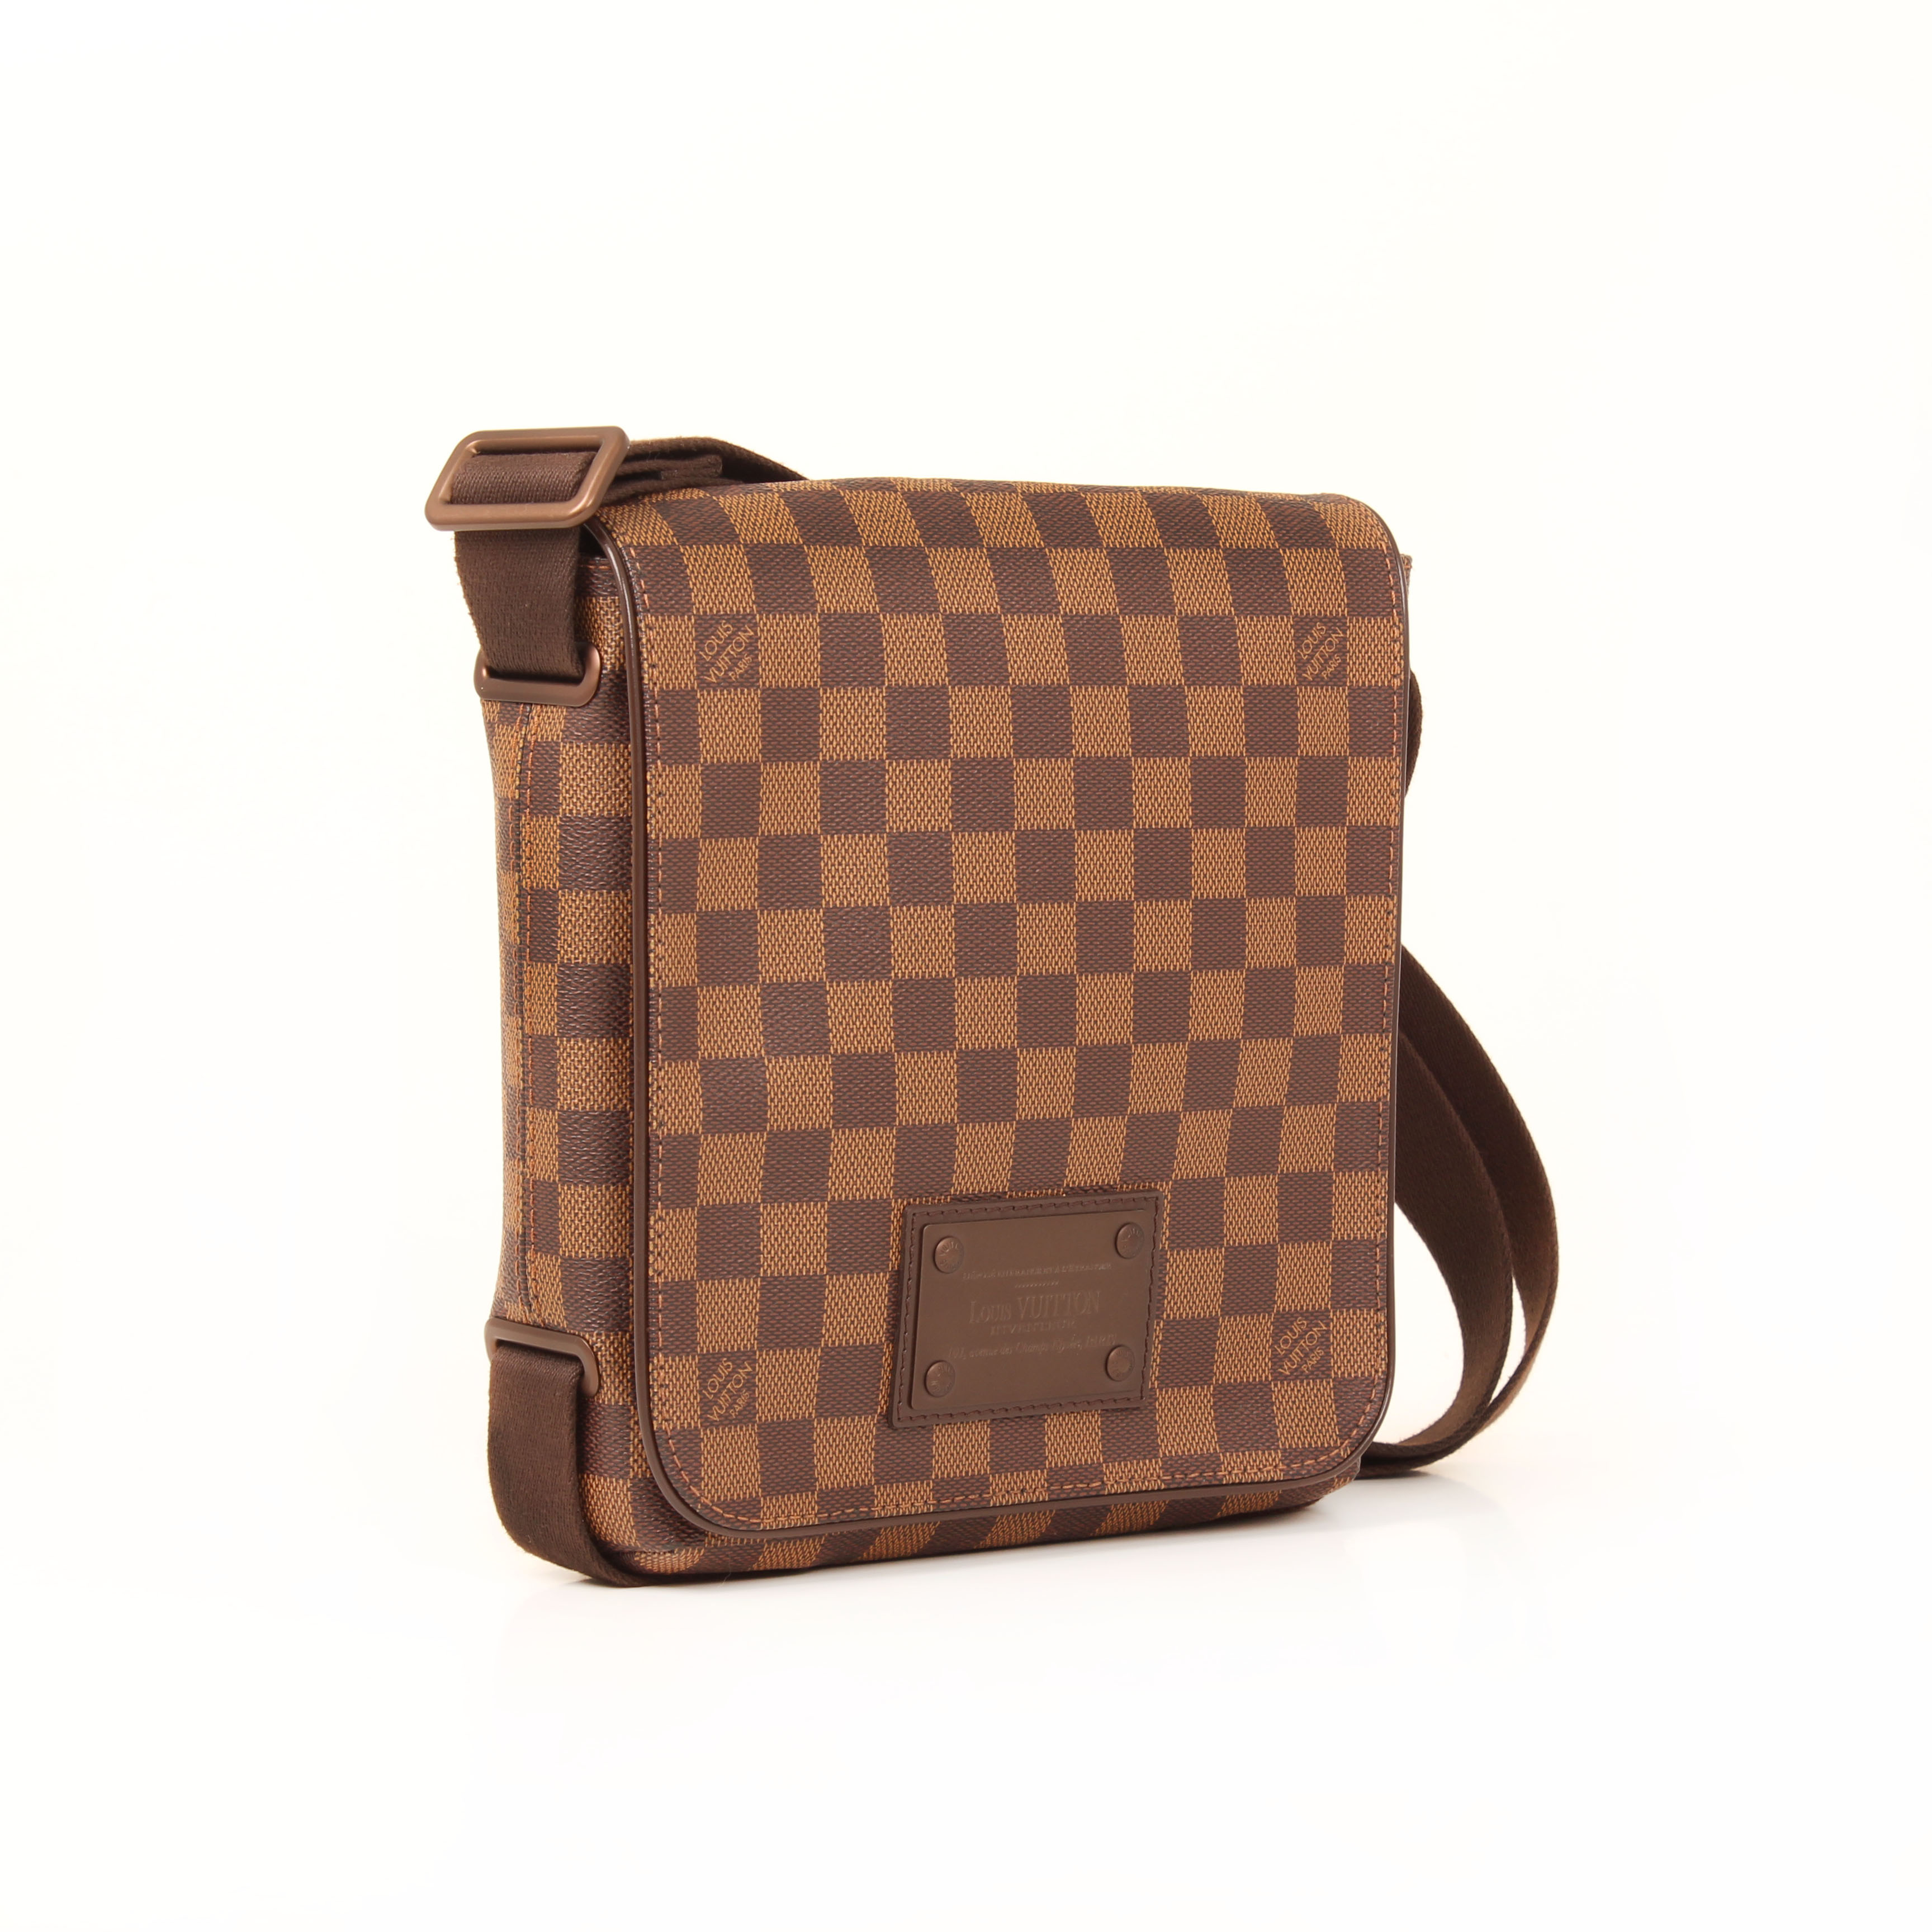 messenger bag louis vuitton brooklyn damier pm ebene side